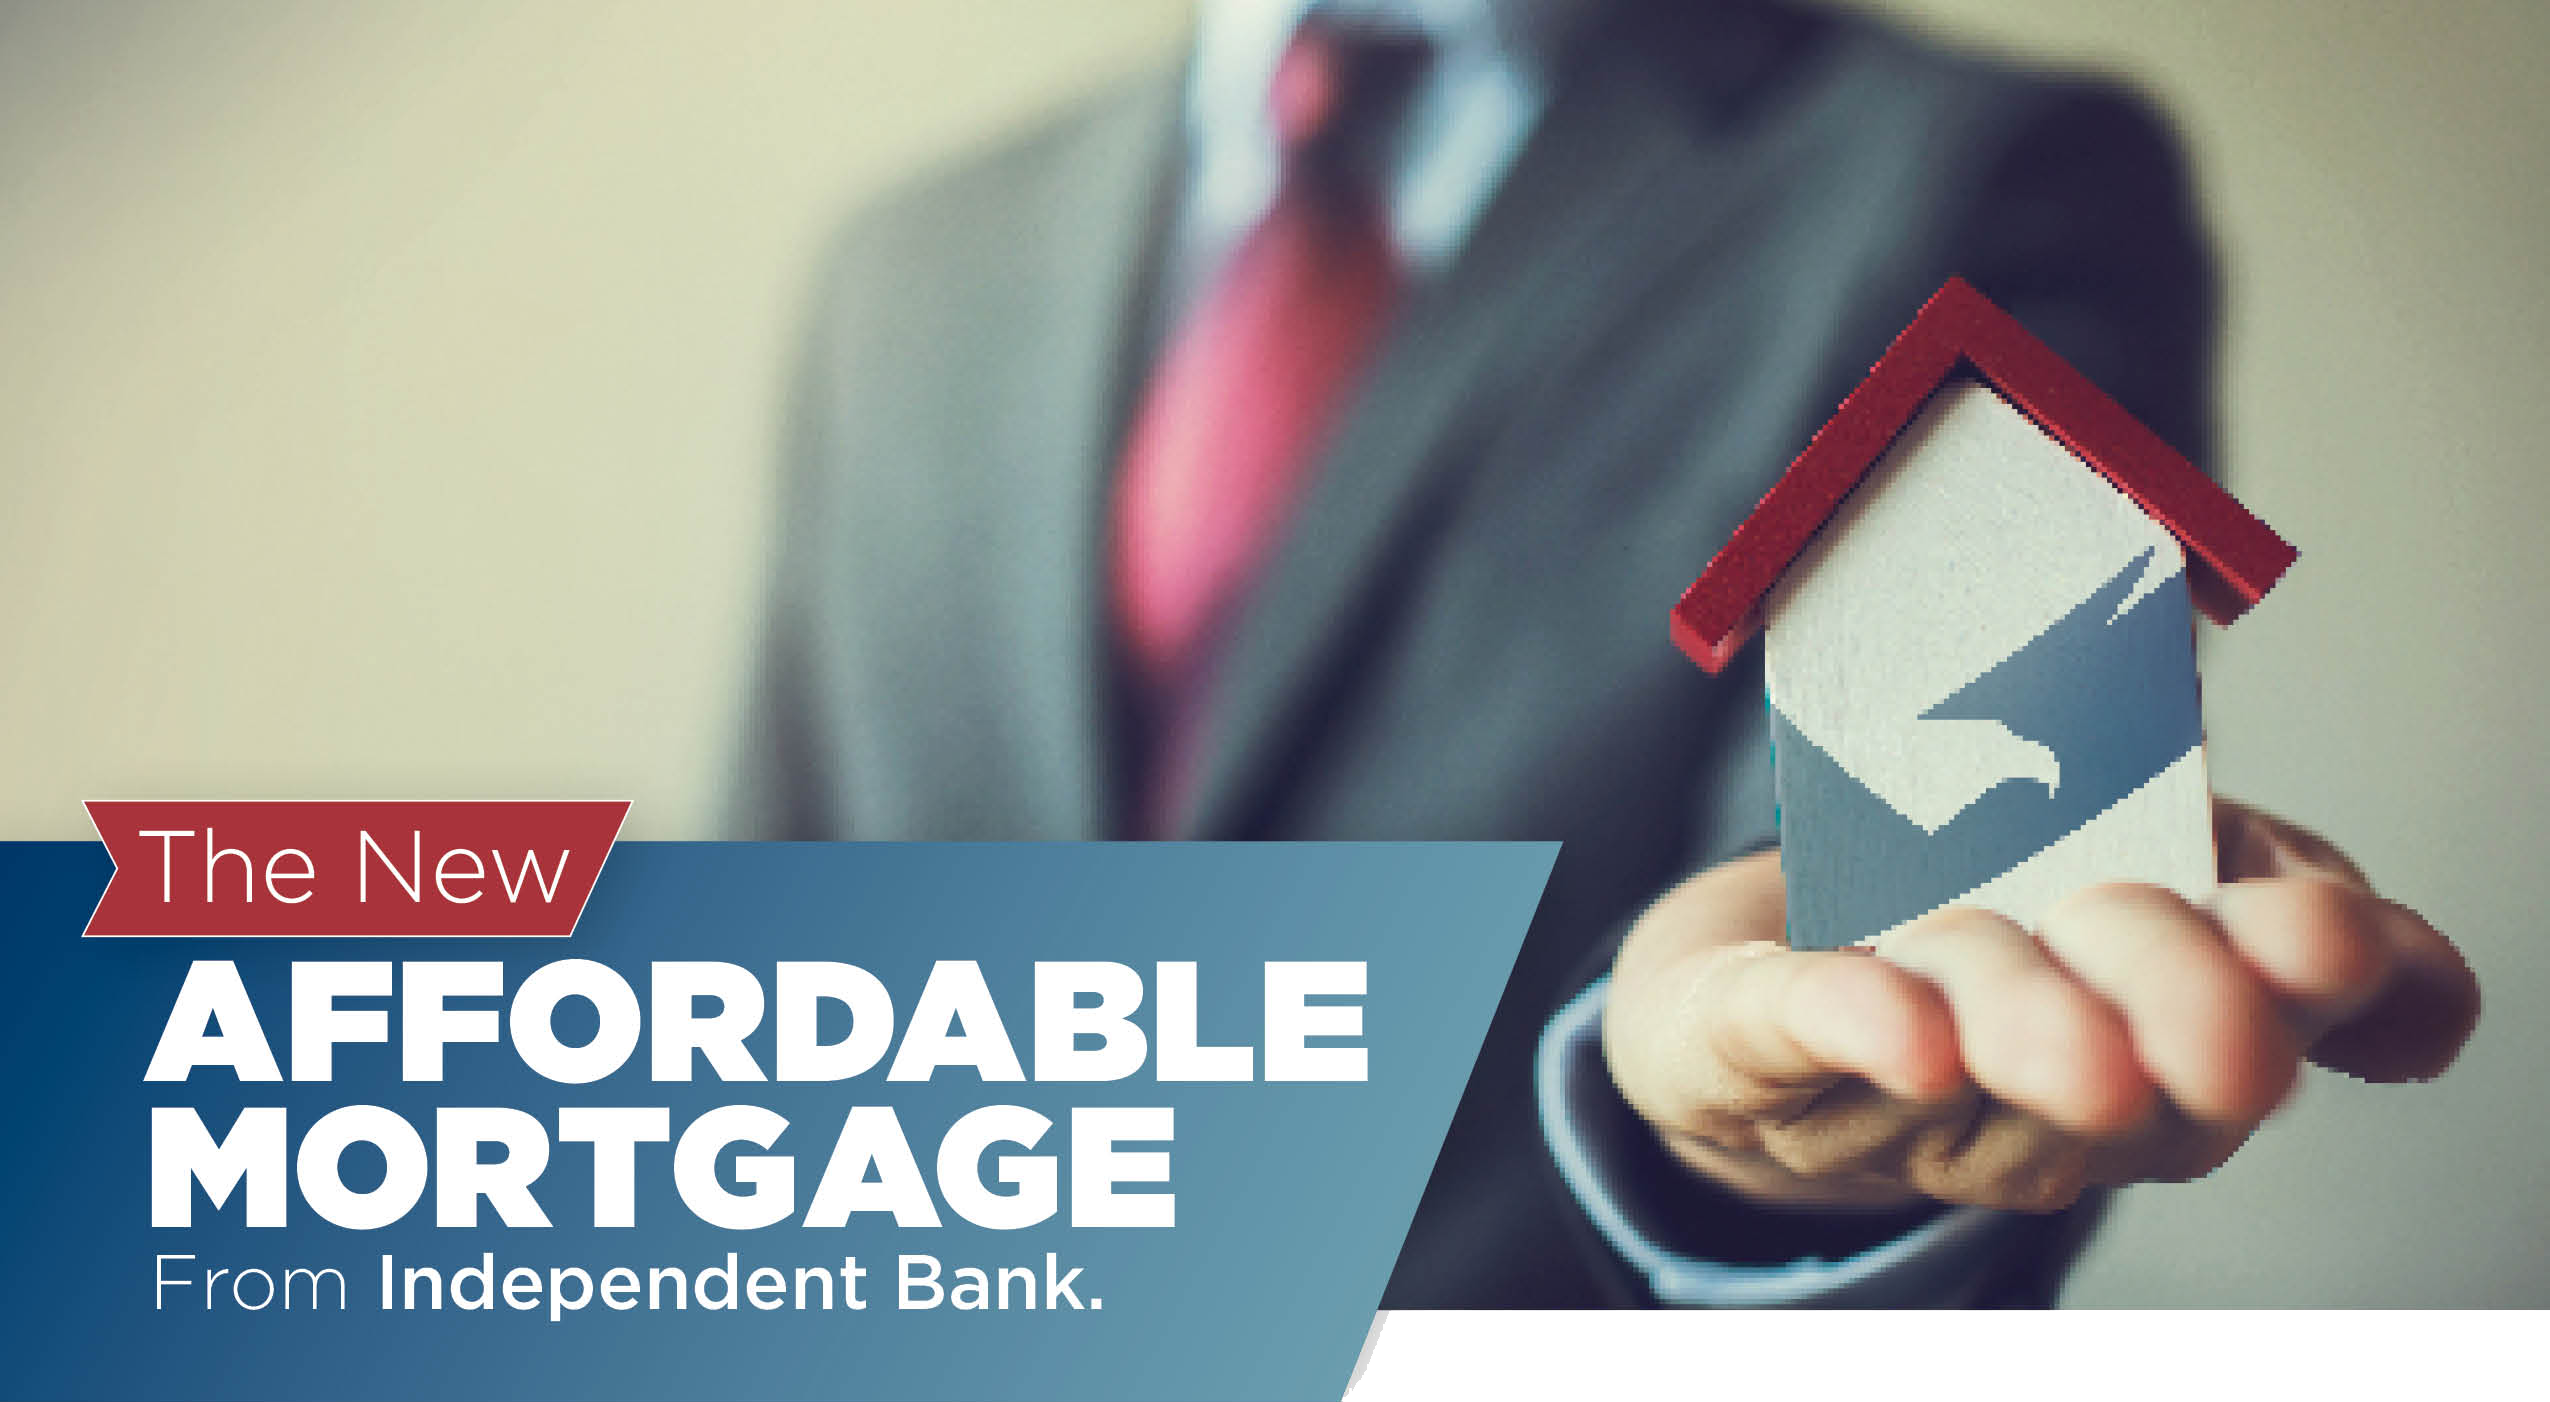 AffordableHomeMortgage